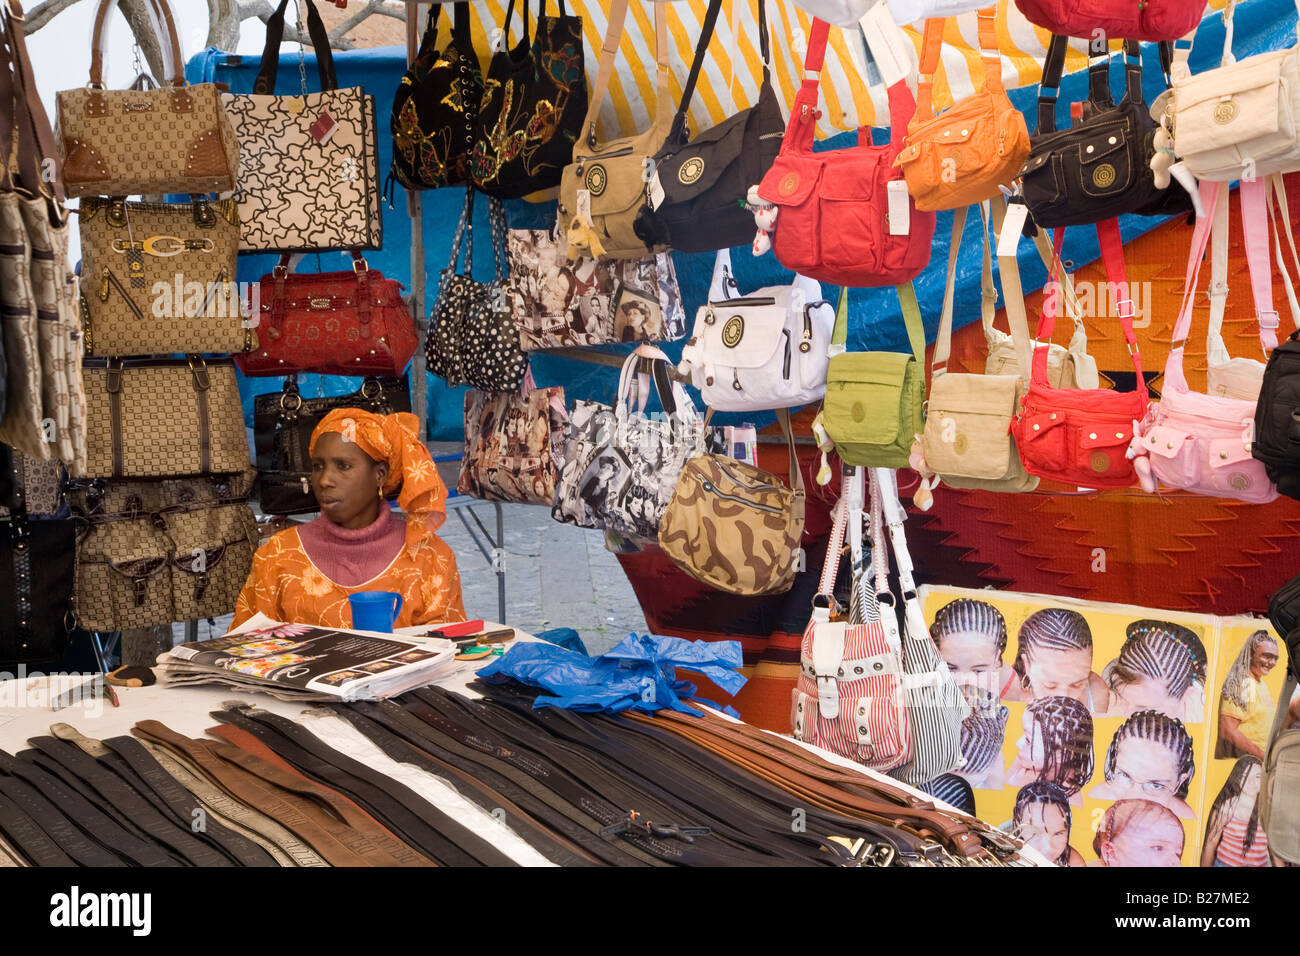 African woman selling handbags and leather belts on market stall Teror Gran  Canaria Spain 951d4e019123d